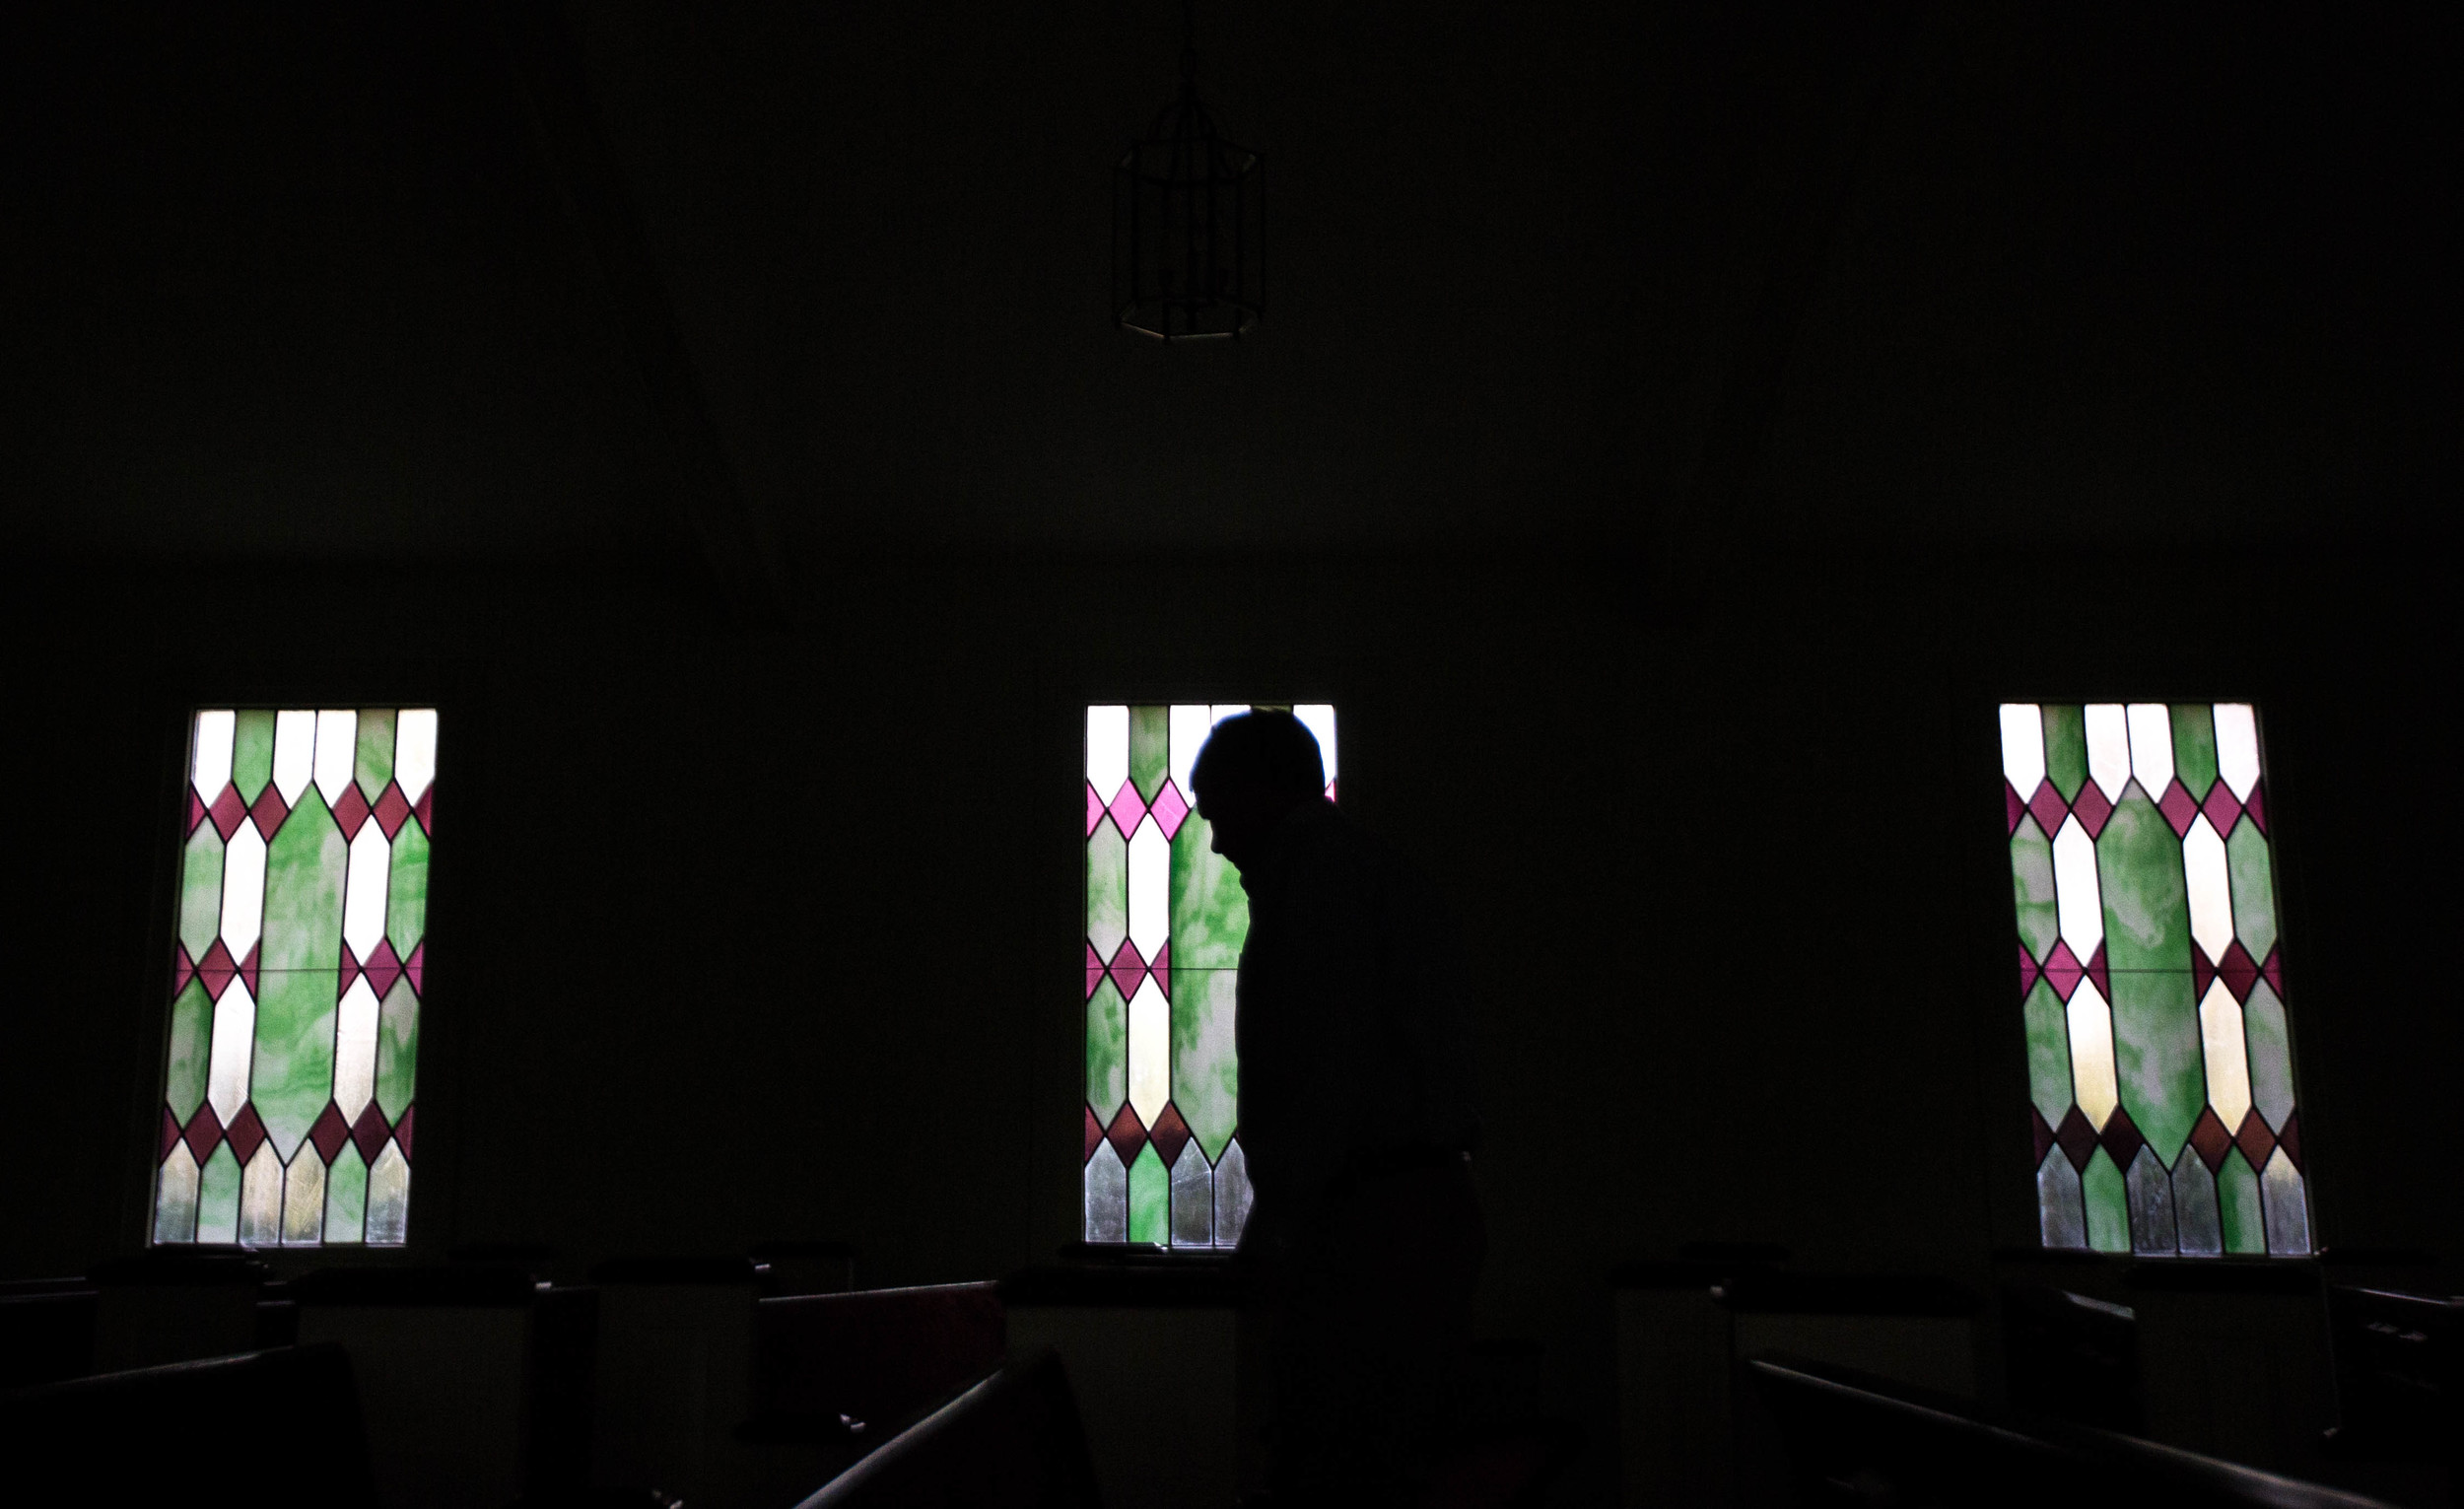 """A church member cleans up the sanctuary after former President Jimmy Carter taught Sunday School class at Maranatha Baptist Church in his hometown, Sunday, Dec. 13, 2015, in Plains, Ga. A recent MRI showing no cancer on Jimmy Carter's brain is """"very positive"""" news for the former president but will not end his medical treatment, doctors said. Carter, 91, announced on Dec. 6 that doctors found no evidence of the four lesions discovered on his brain this summer and no signs of new cancer growth. (AP Photo/Branden Camp)"""